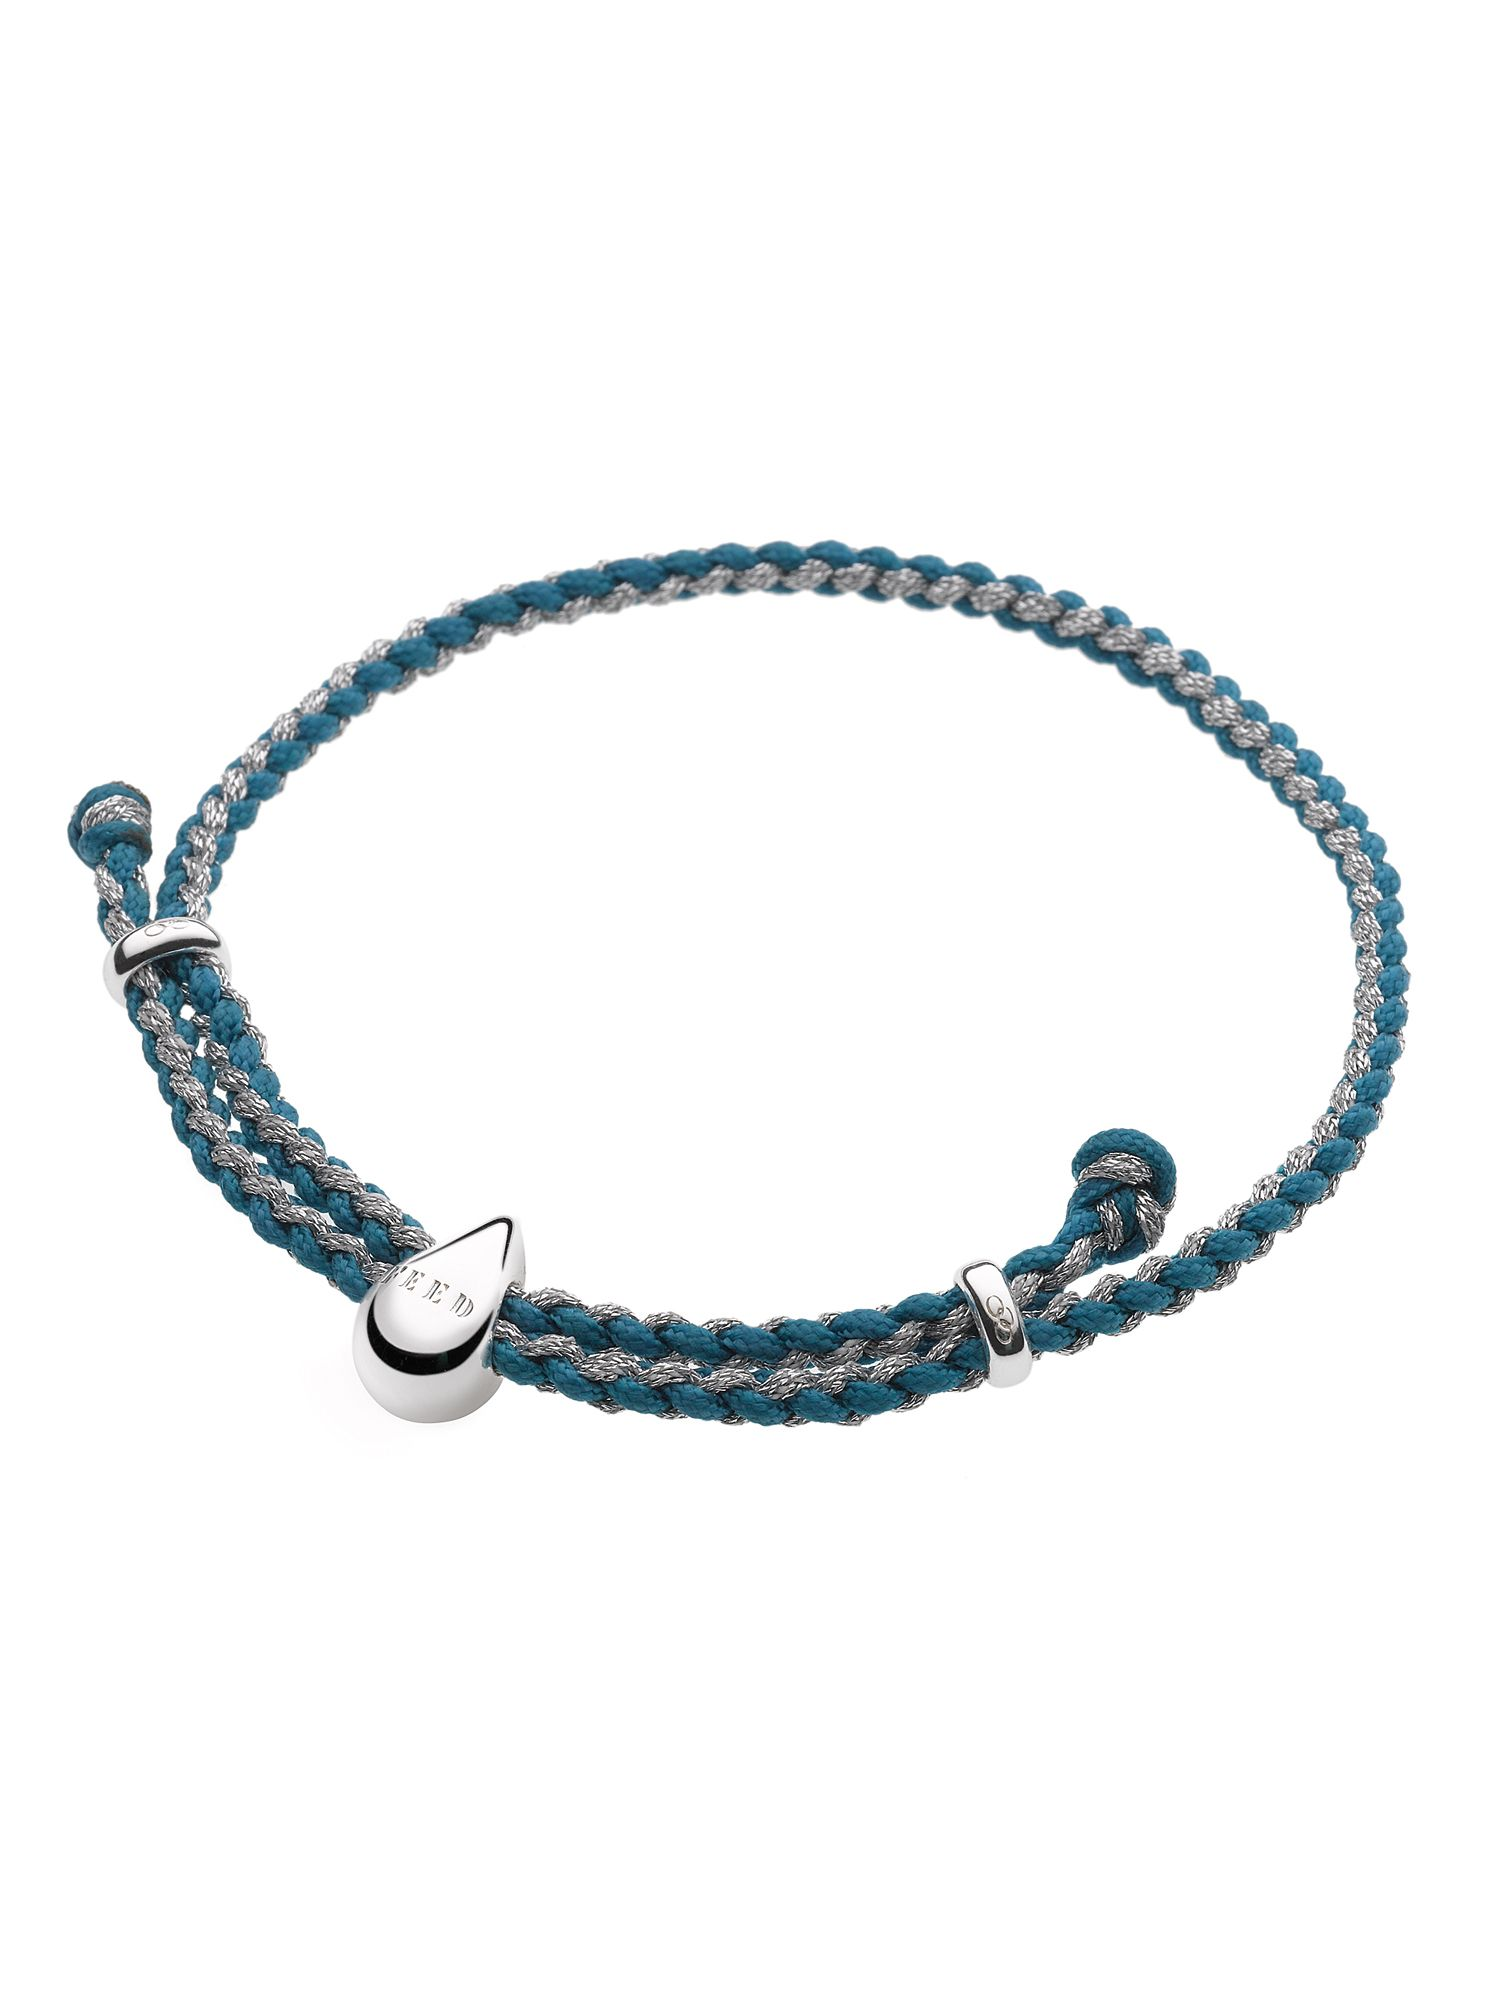 Feed Water Drop Turquoise & Metallic Pewter Cord